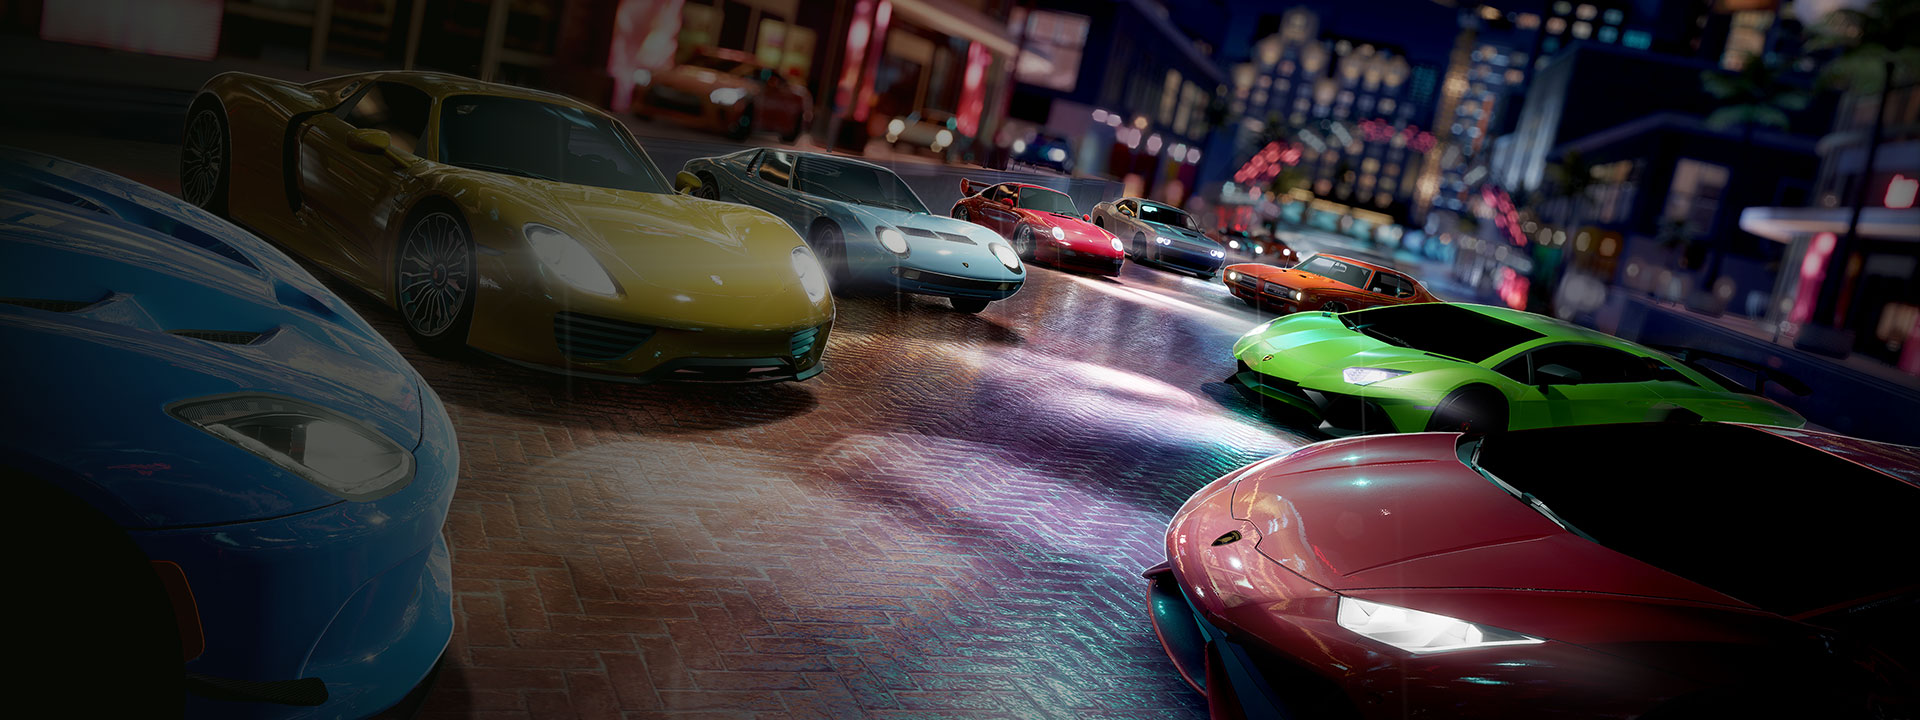 Line-up of sports cars on a colourful street at night